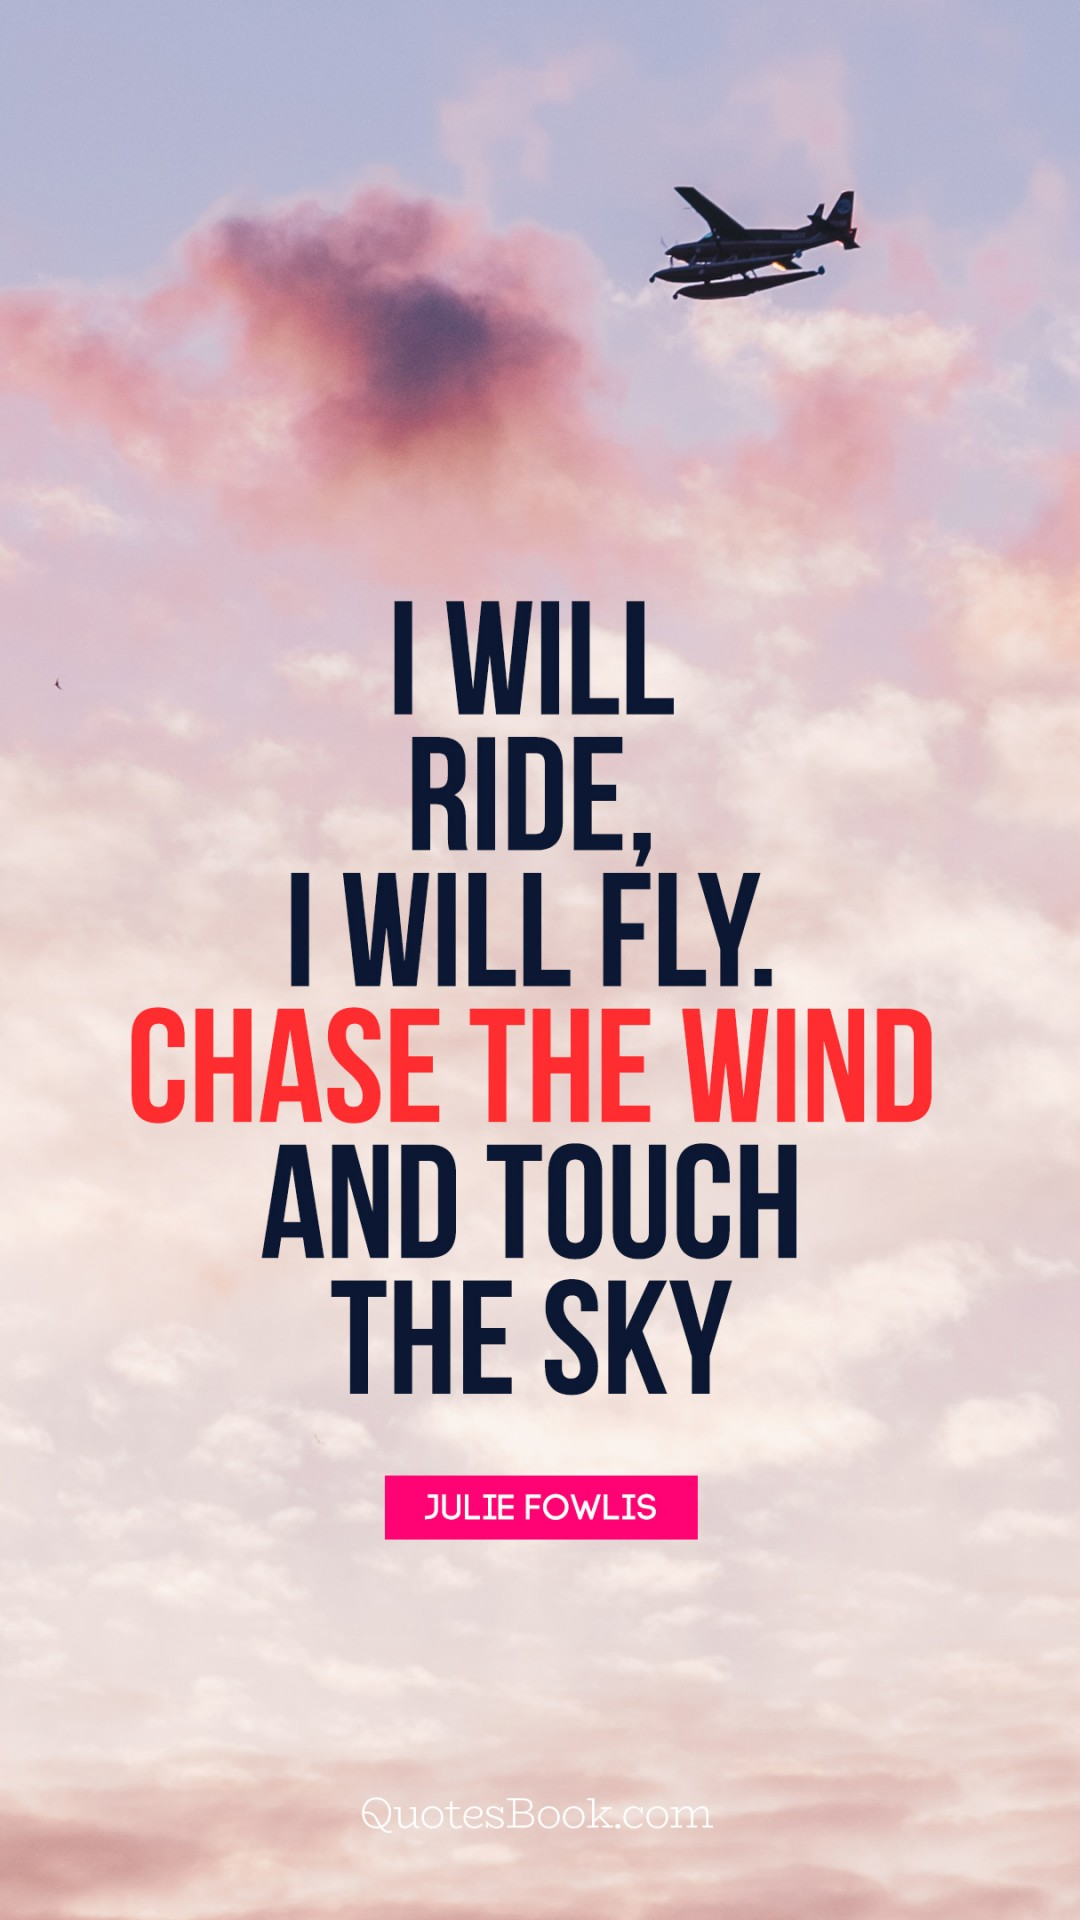 I Will Ride I Will Fly Chase The Wind And Touch The Sky Quote By Julie Fowlis Quotesbook